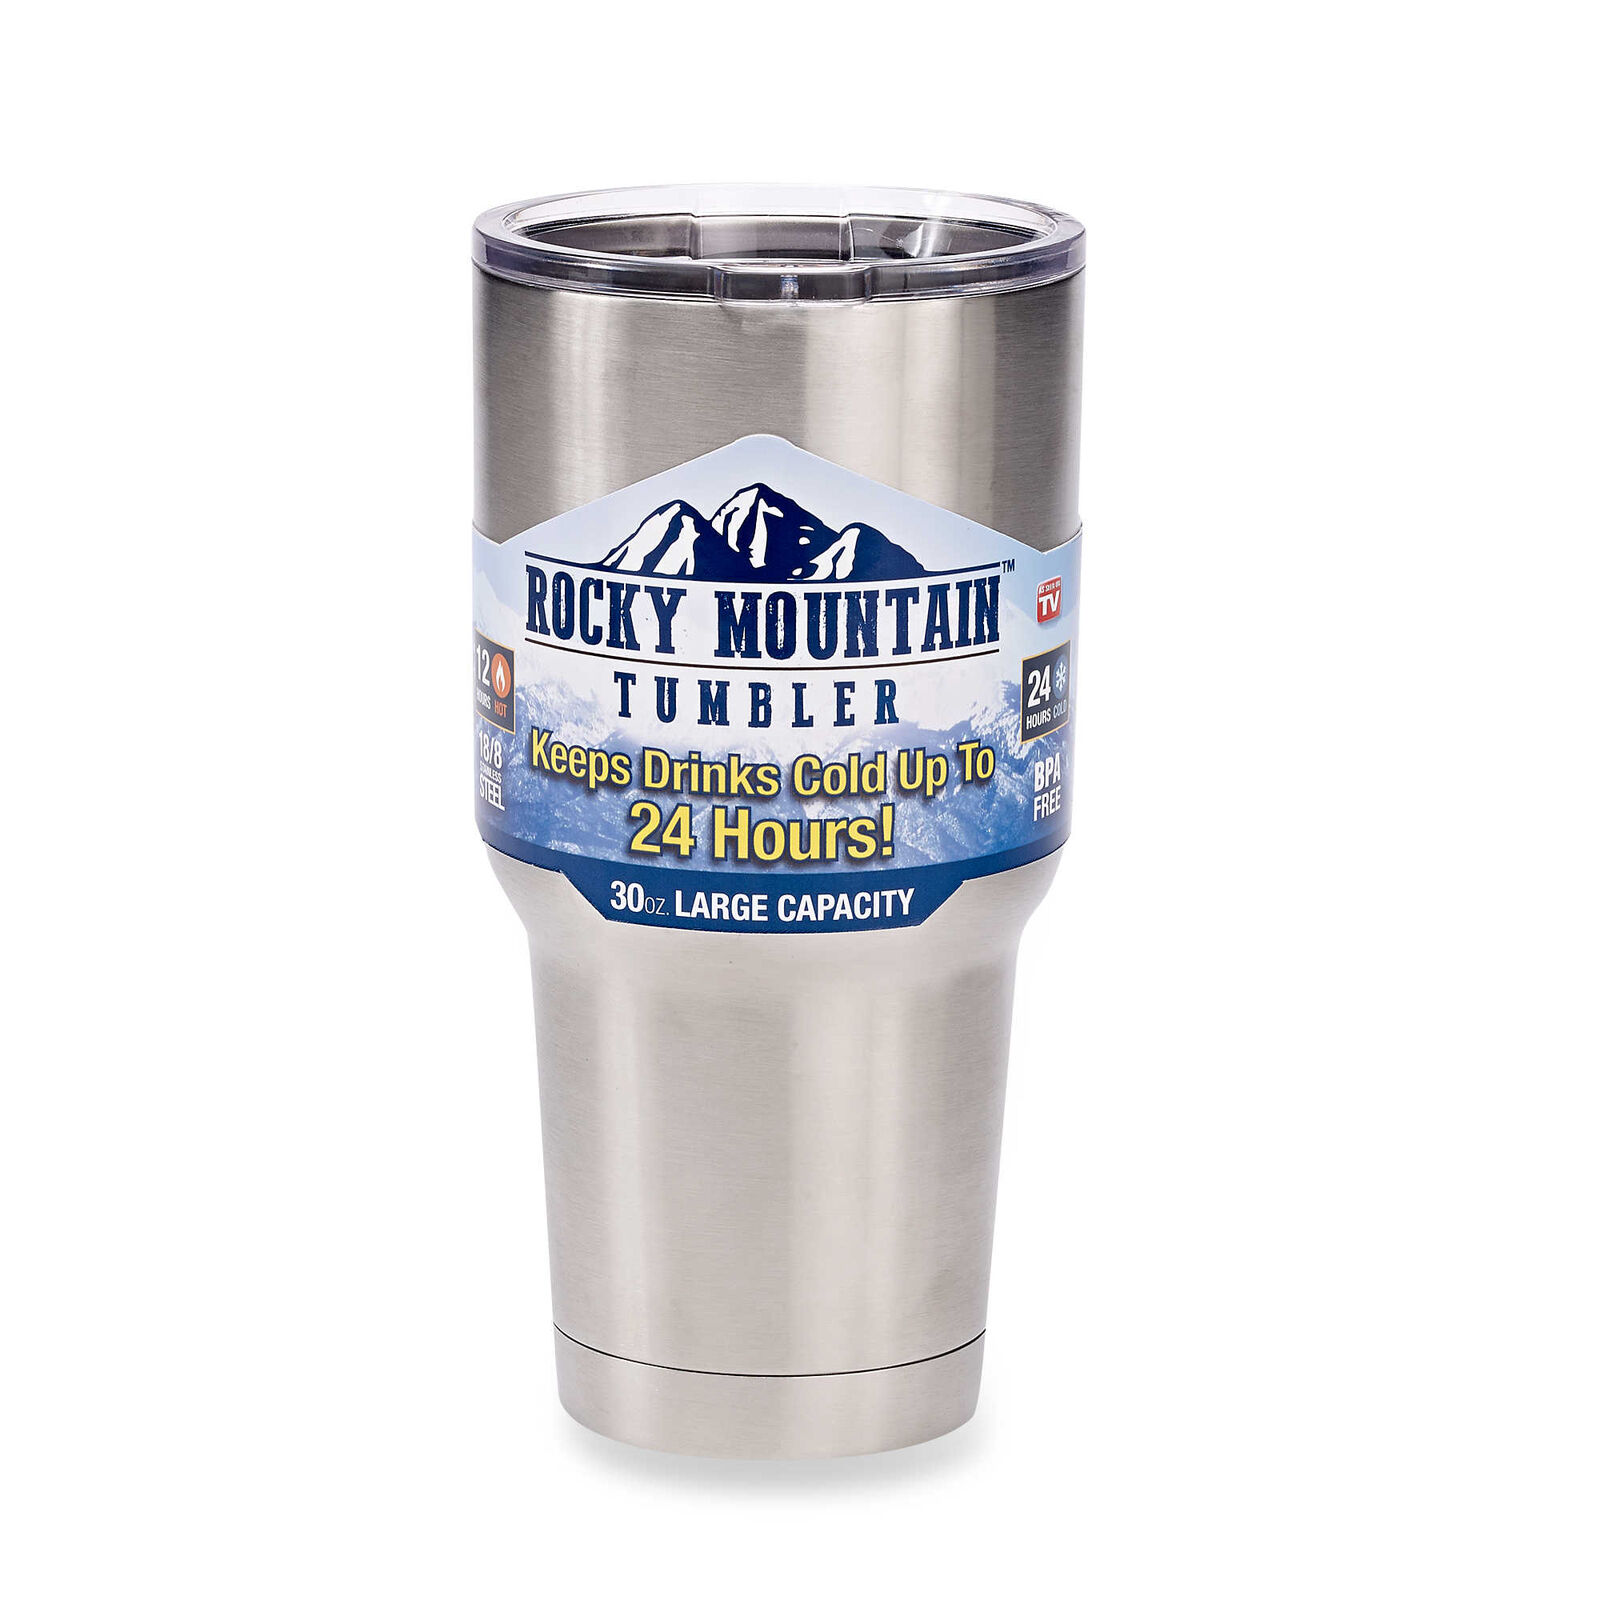 2 pc Rocky Mountain Tumbler 30oz Stainless Steel Double Wall Insulate Coffee Mug